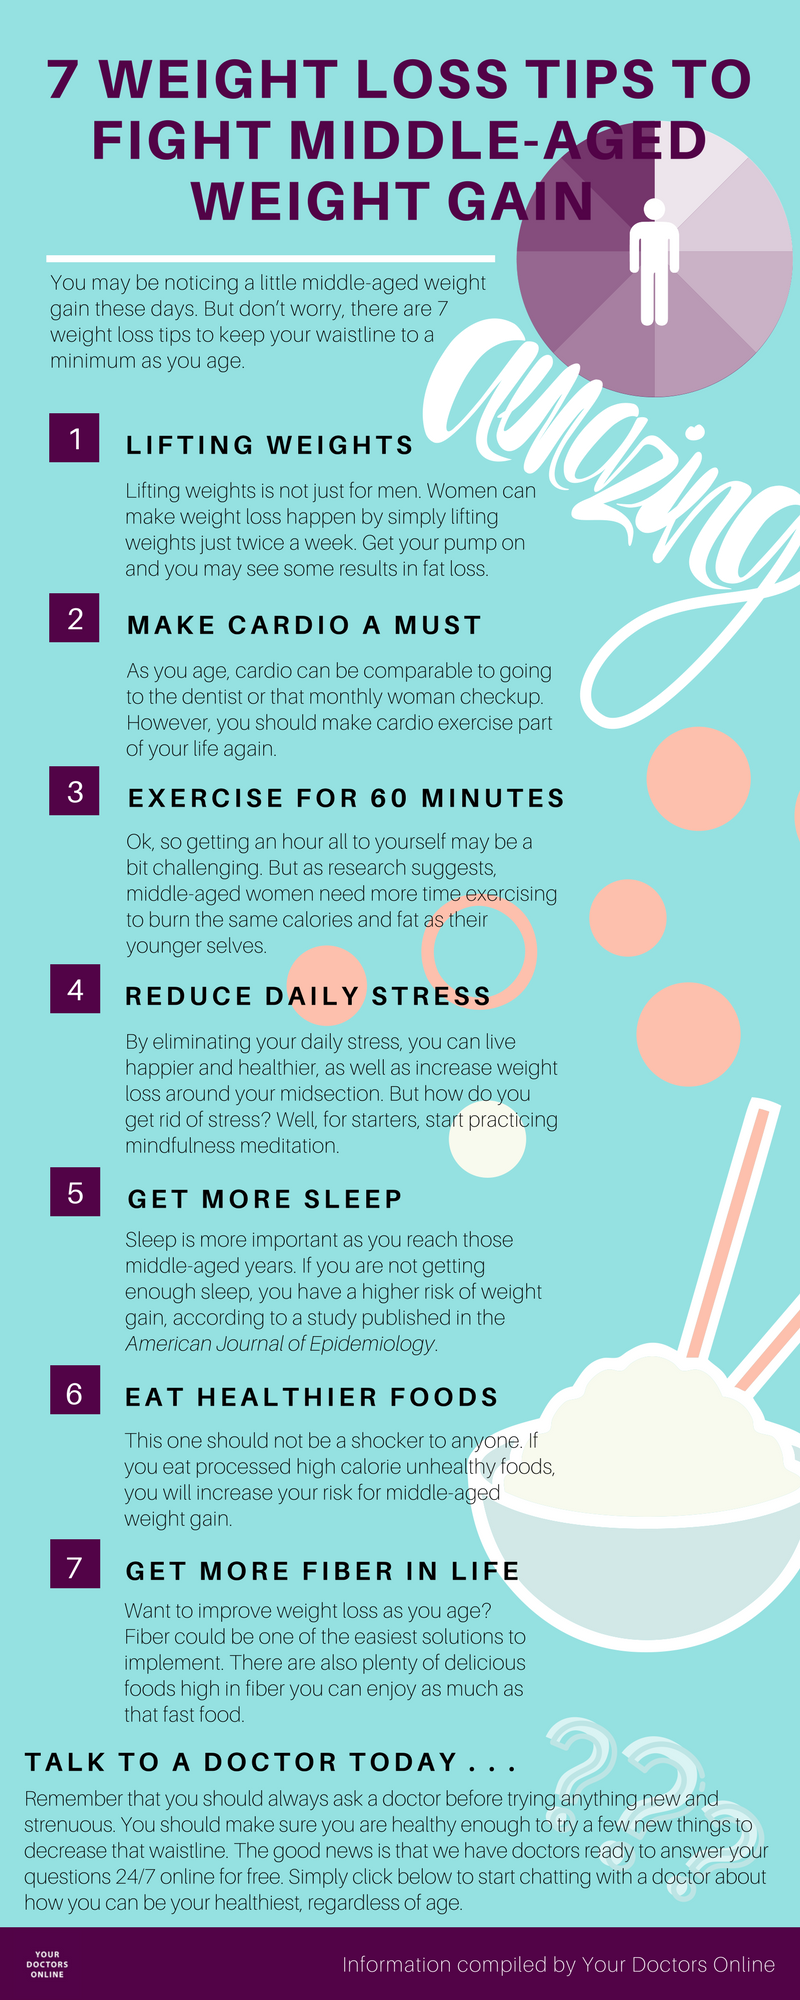 7 Weight Loss Tips to Fight Middle-Aged Weight Gain (infographic)